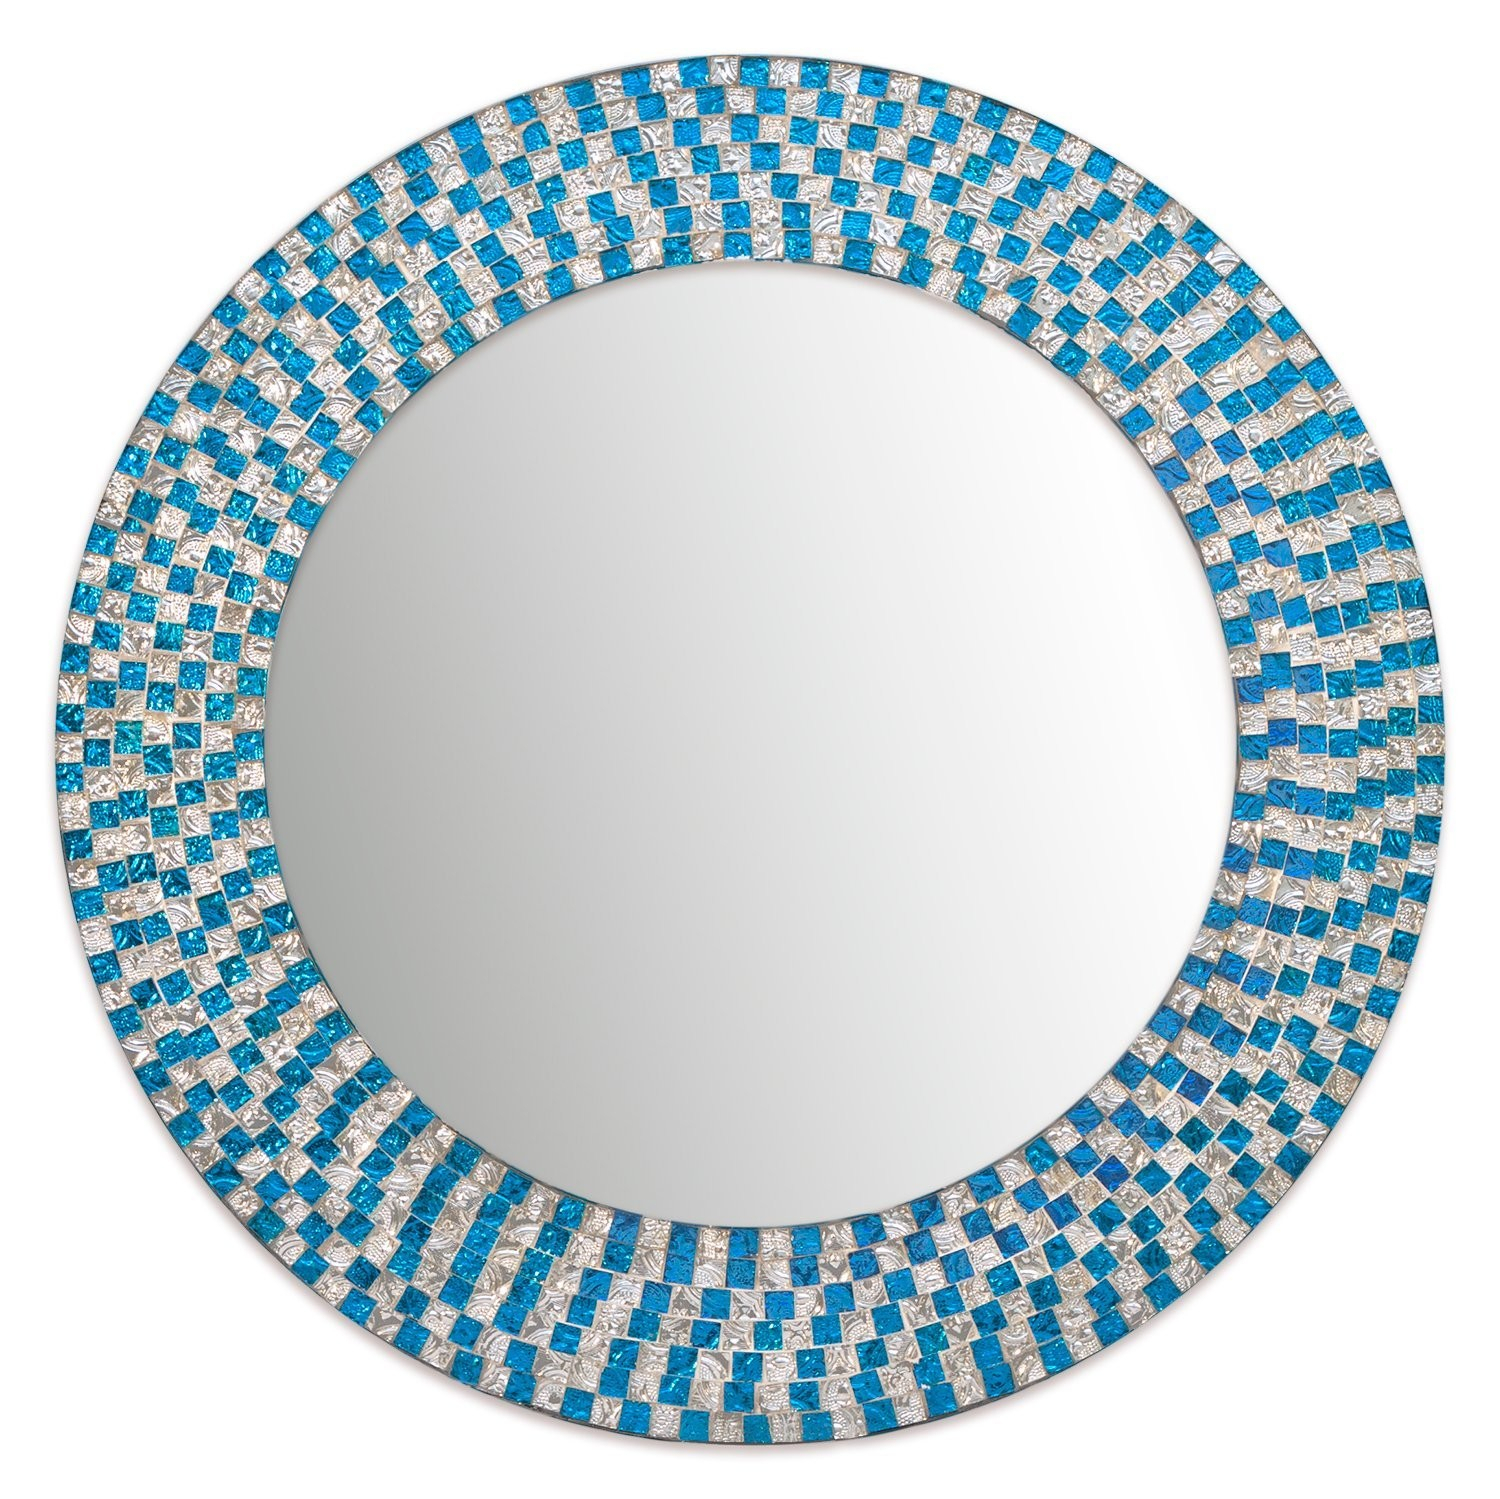 Decorshore Jewel Tone Accent Round Decorative Wall Mirror With Silver Frame Accent Mirrors (View 16 of 30)